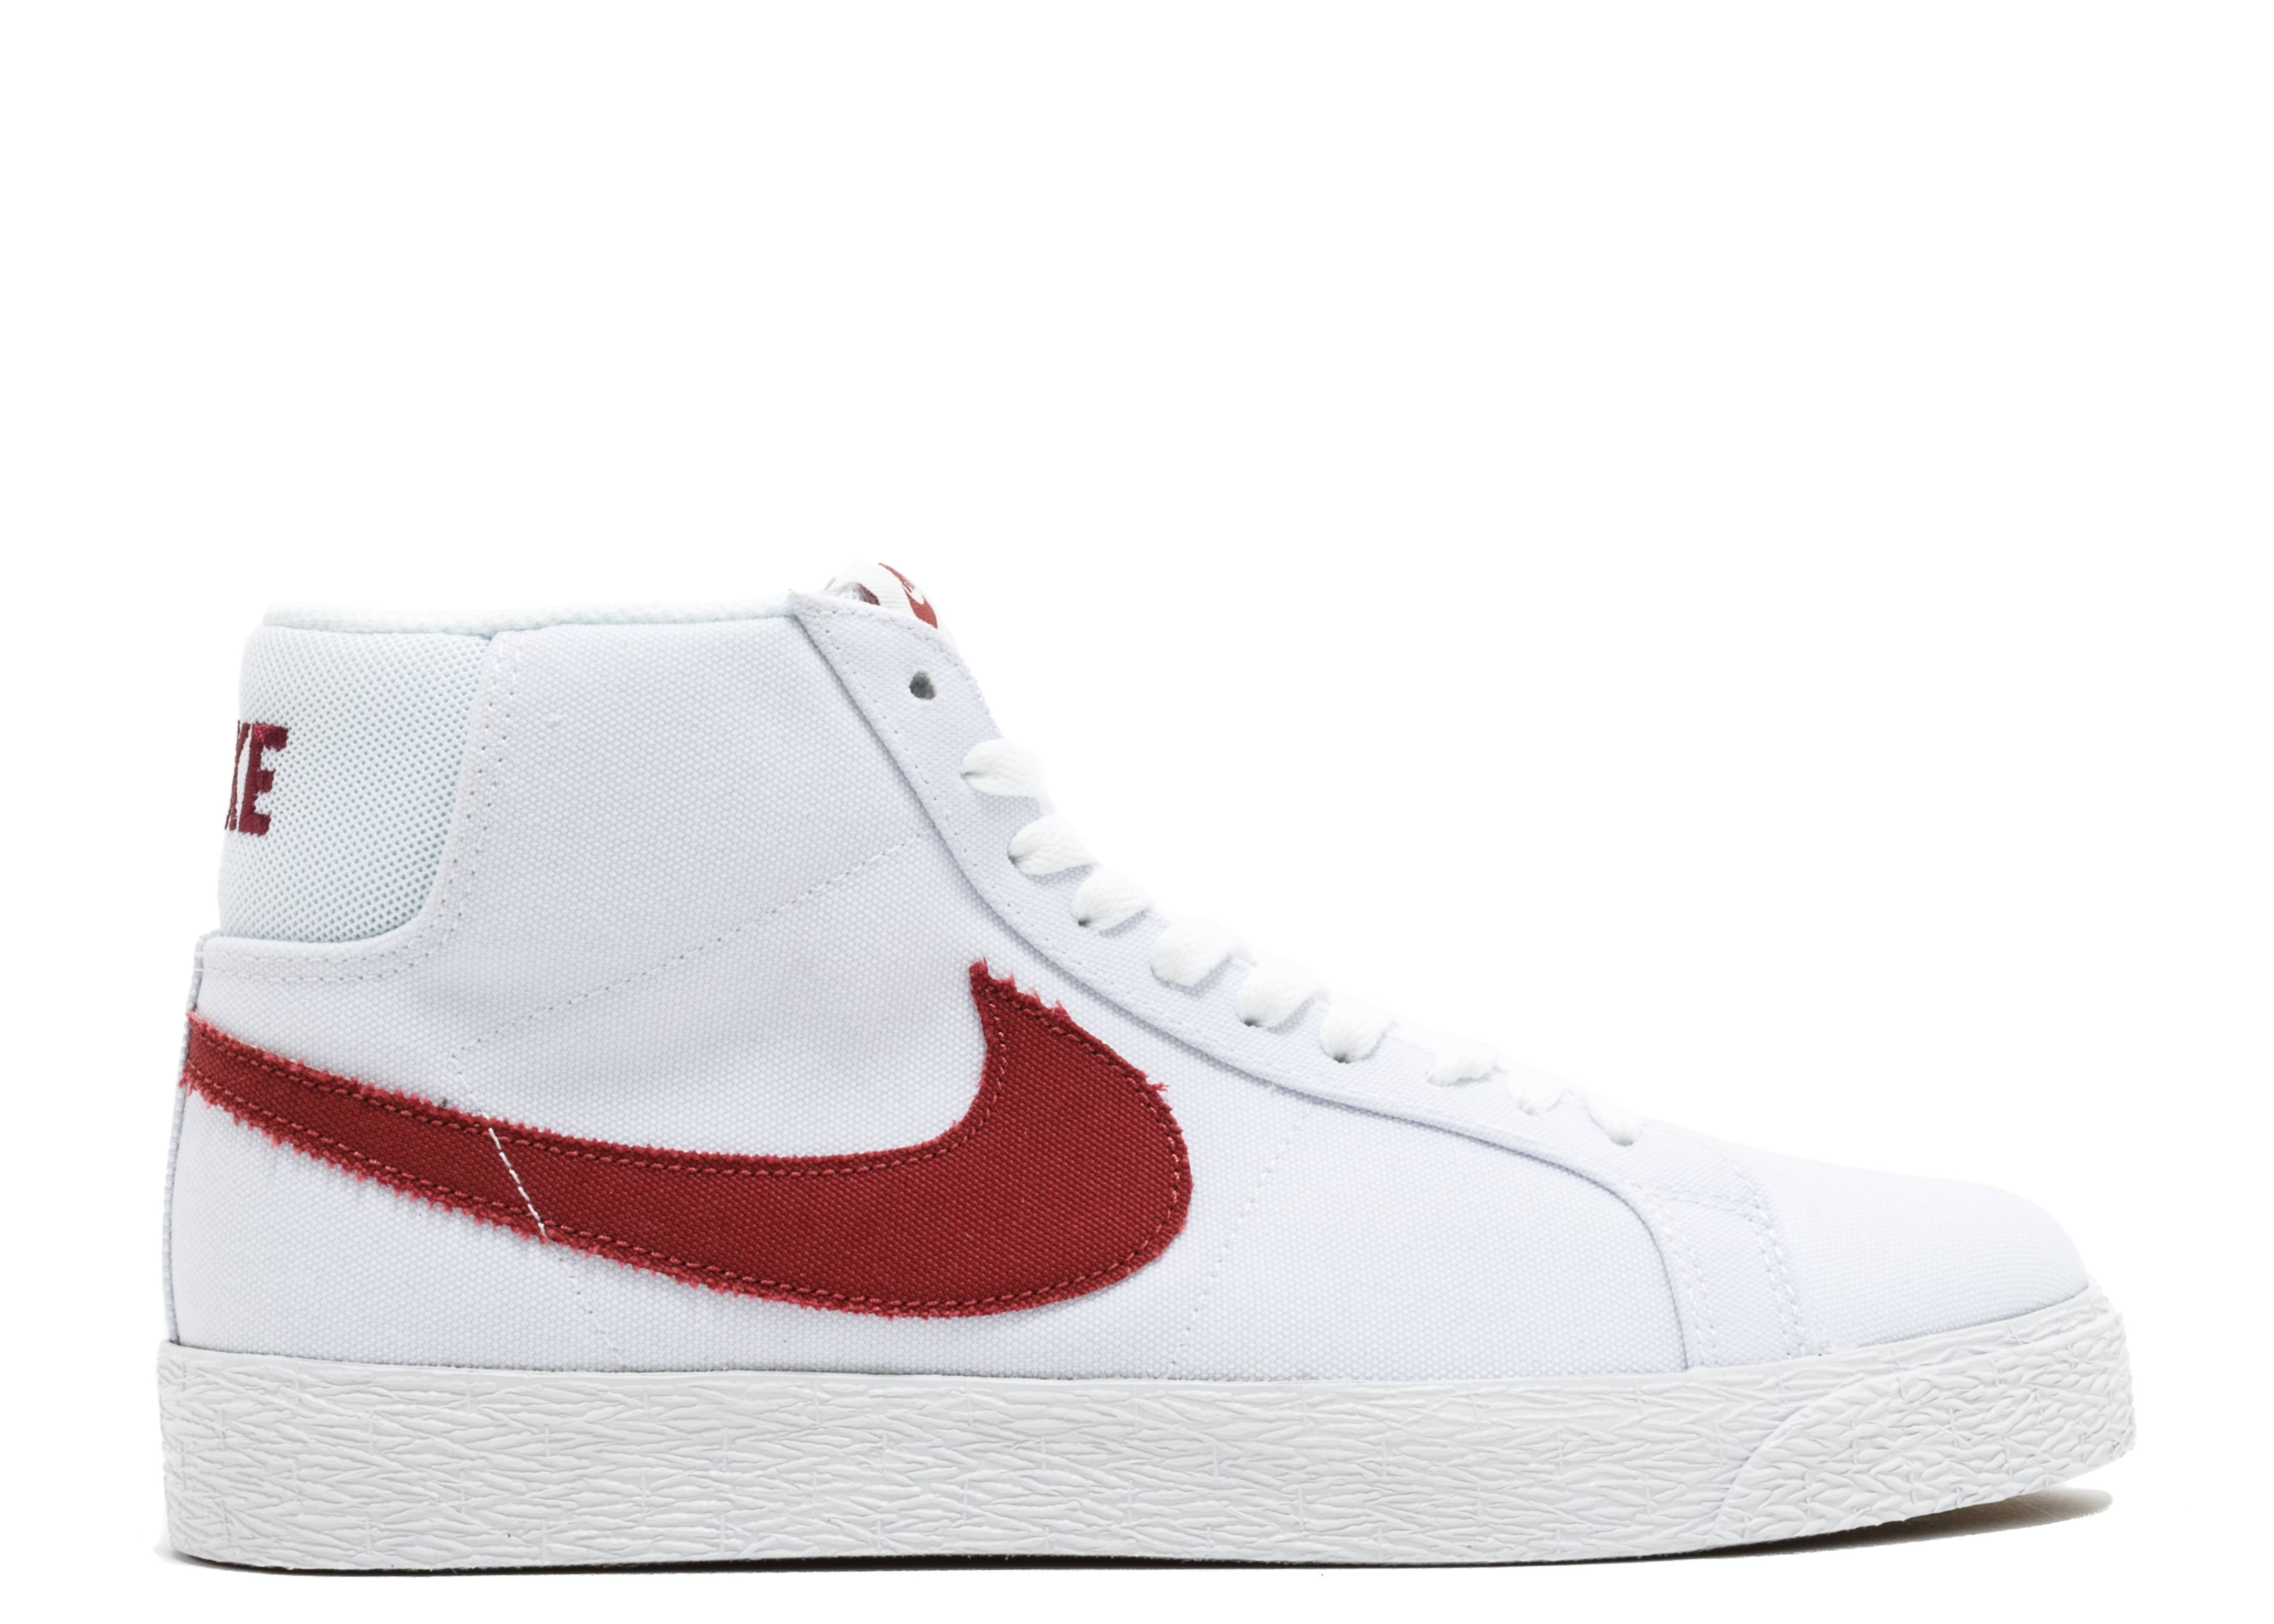 Nike Blazer 1 High Red White Shoes